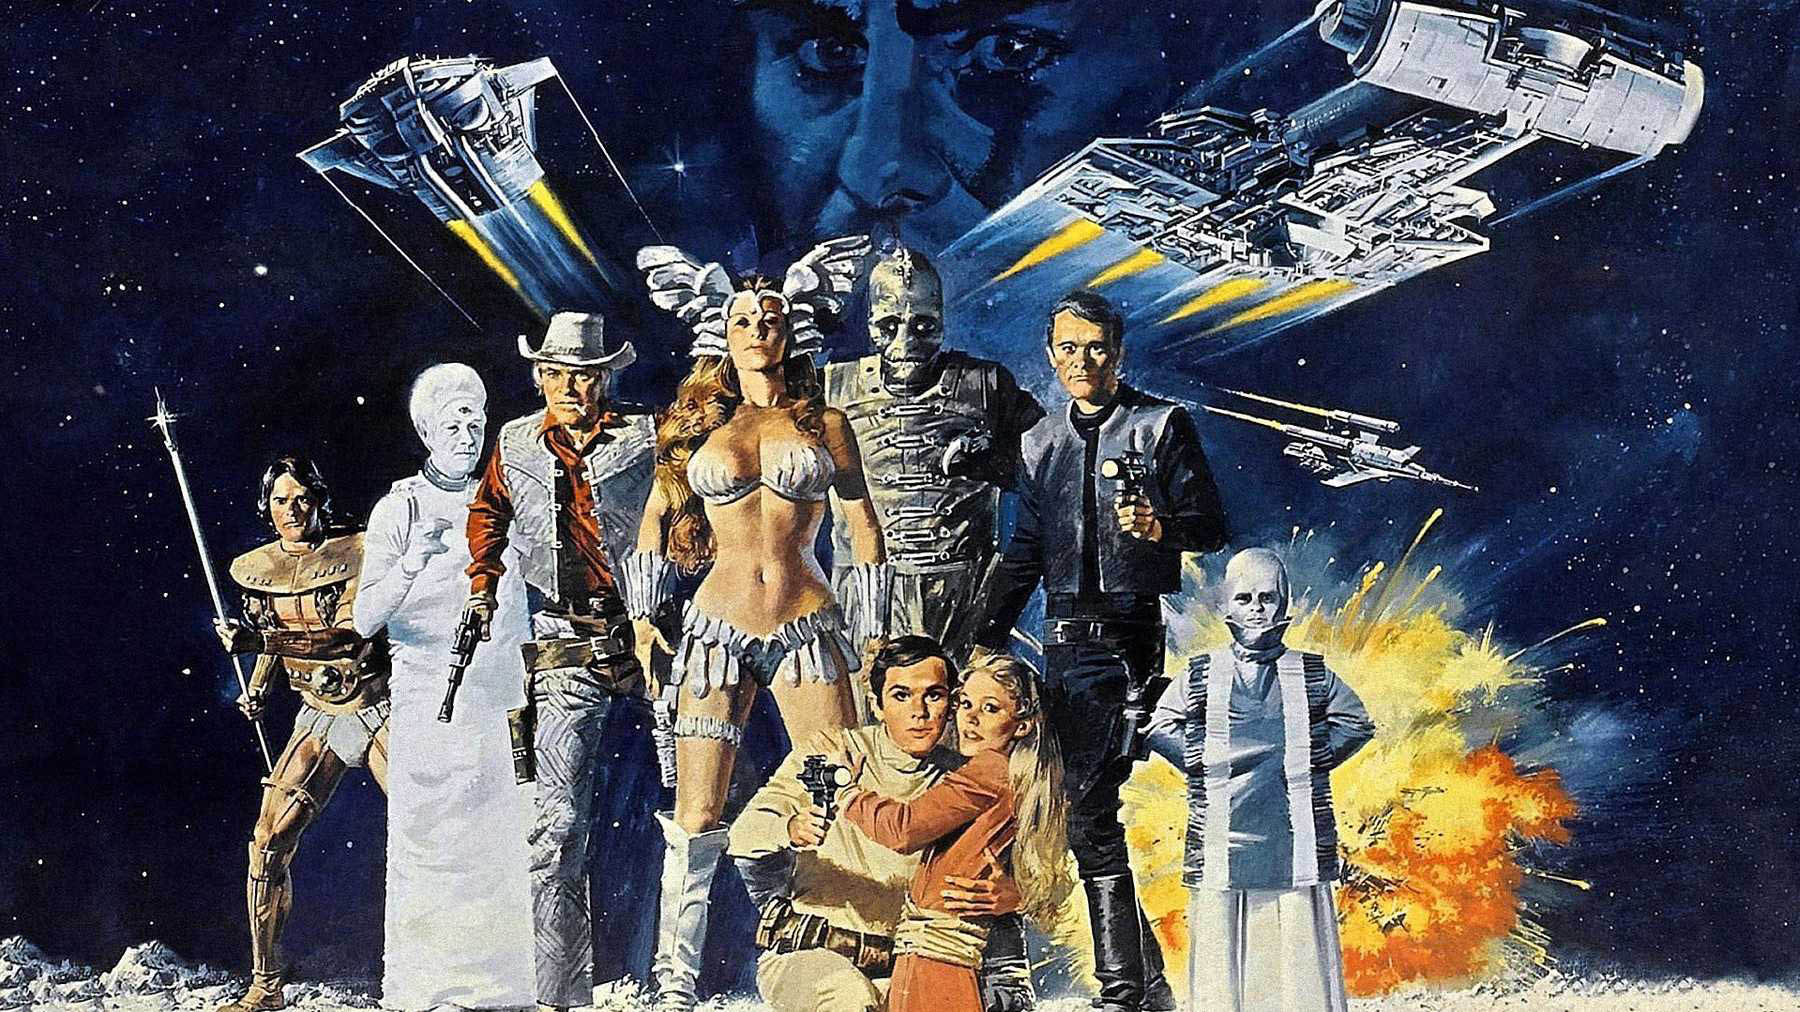 1980 Movie Project - Battle Beyond the Stars - 02